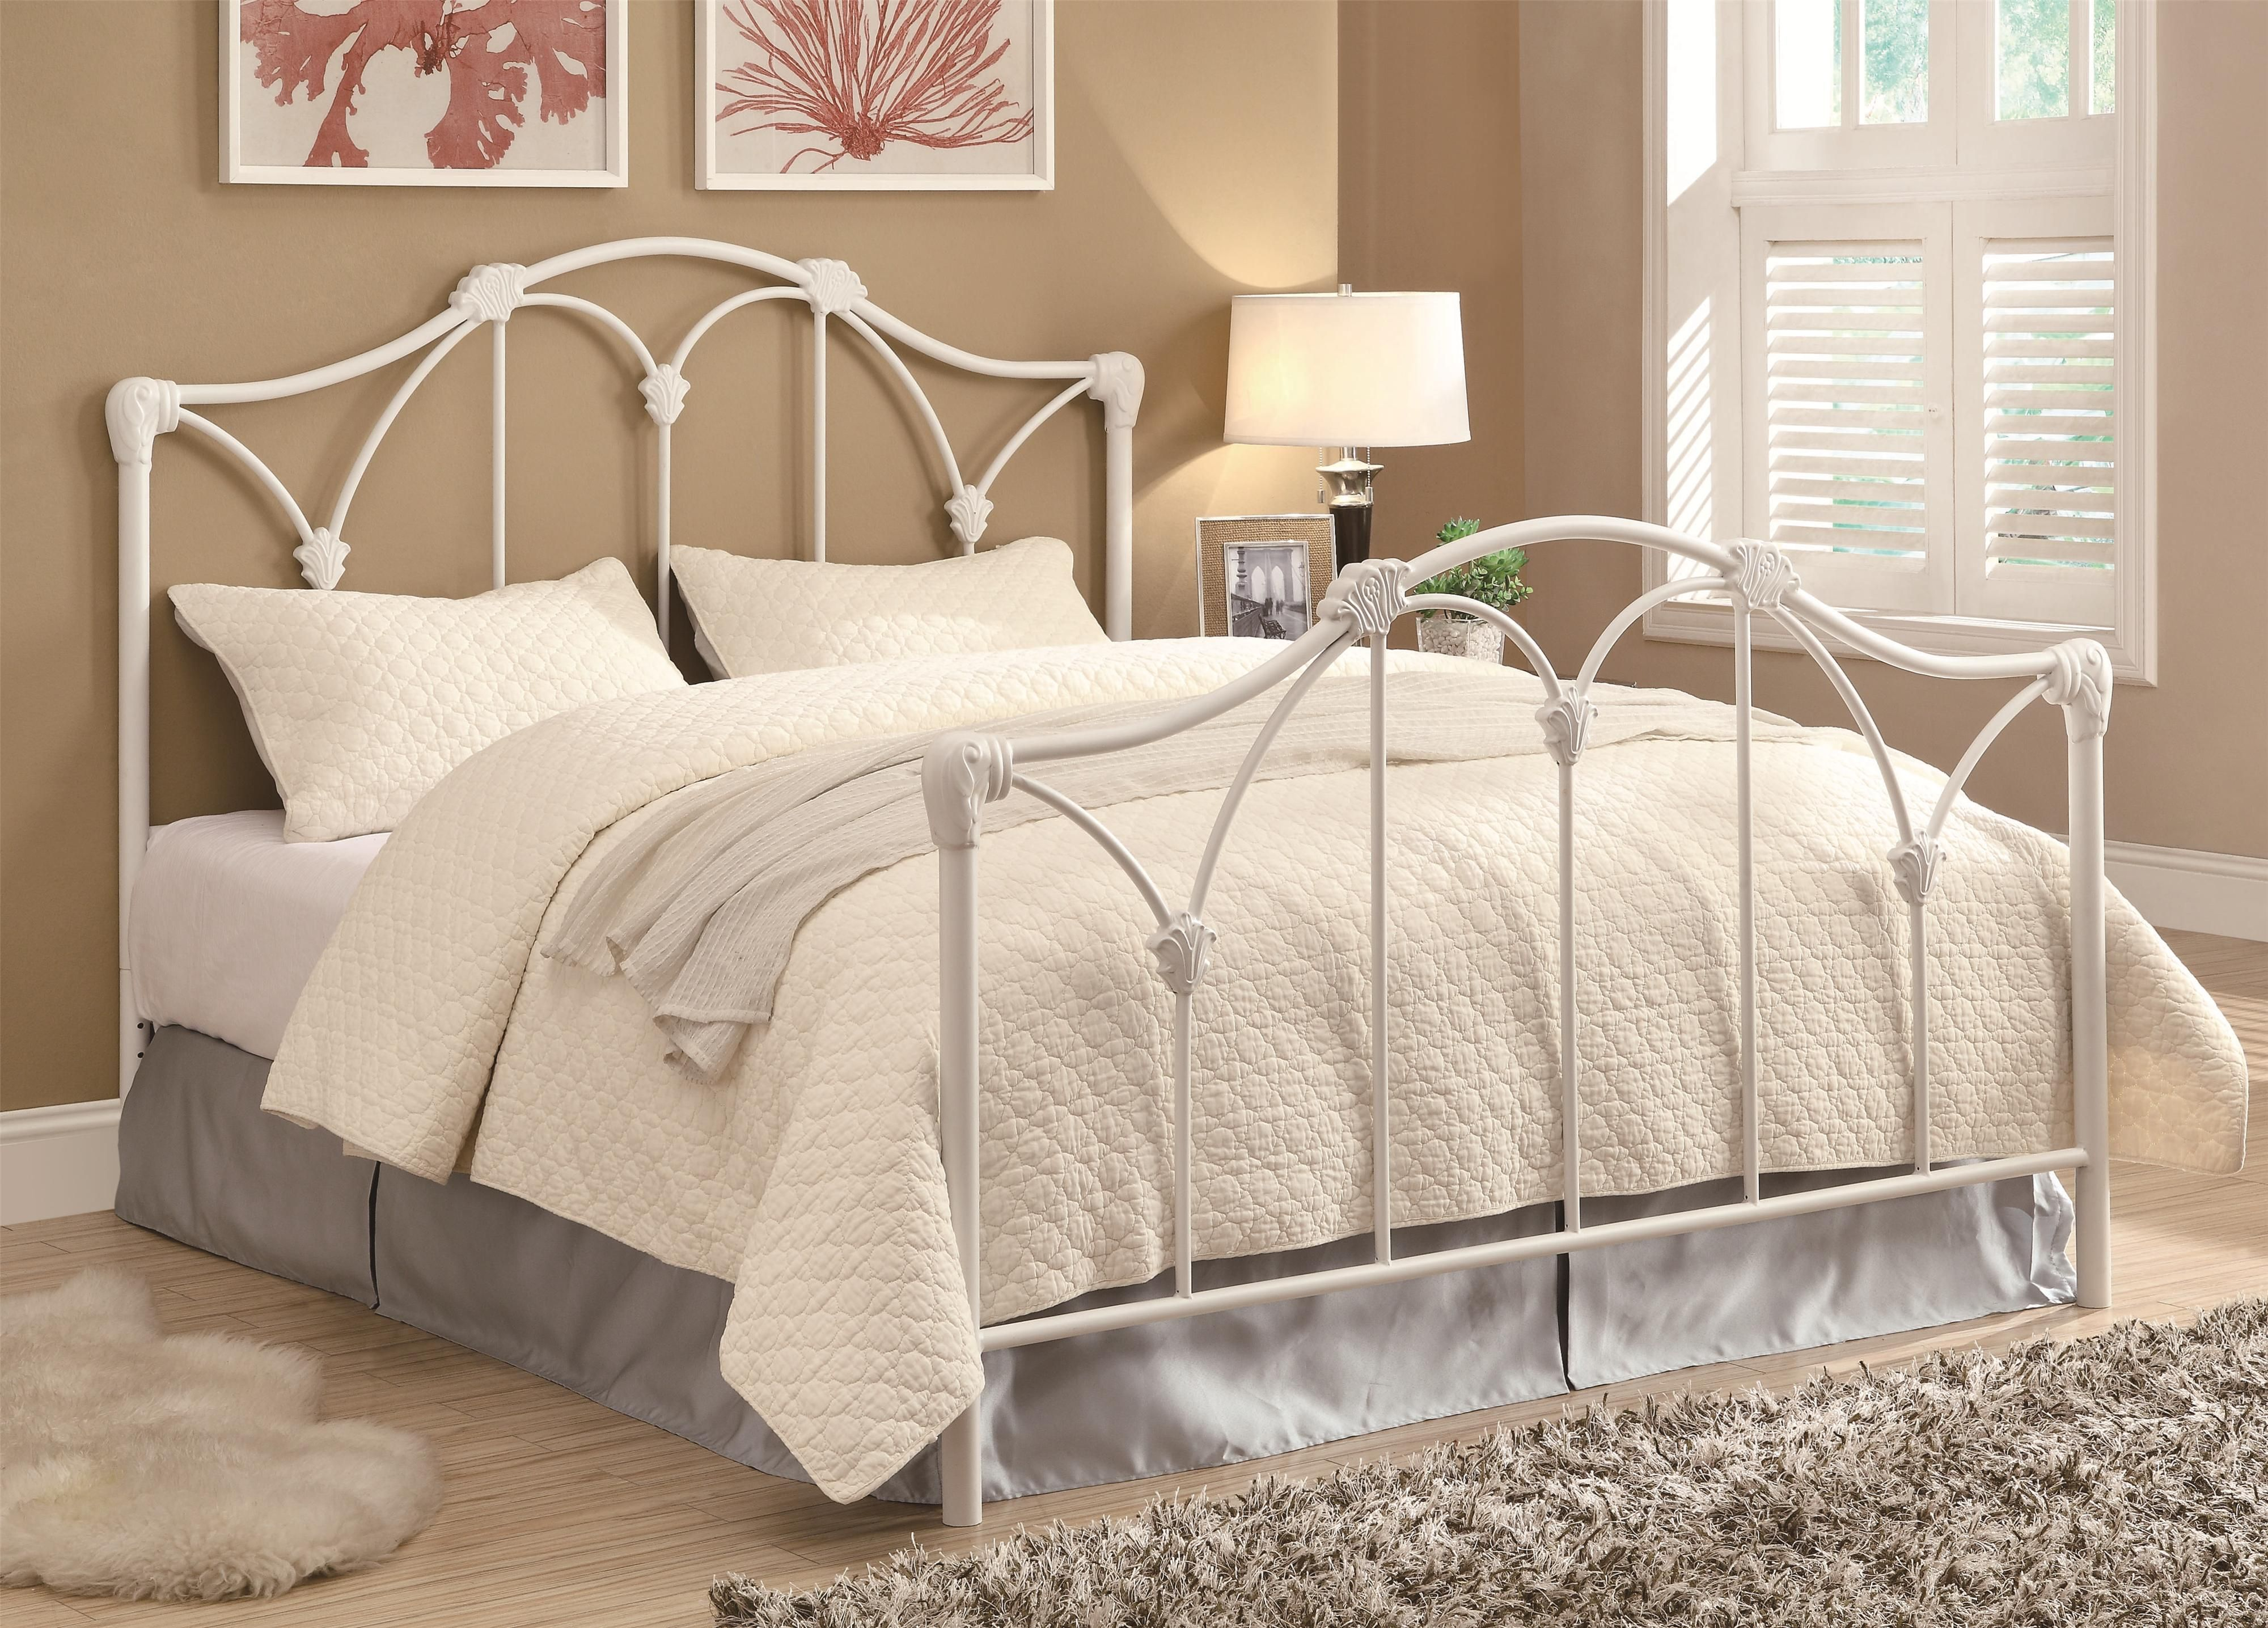 King Size Antique Metal Bed Arched Victorian Wrought Iron